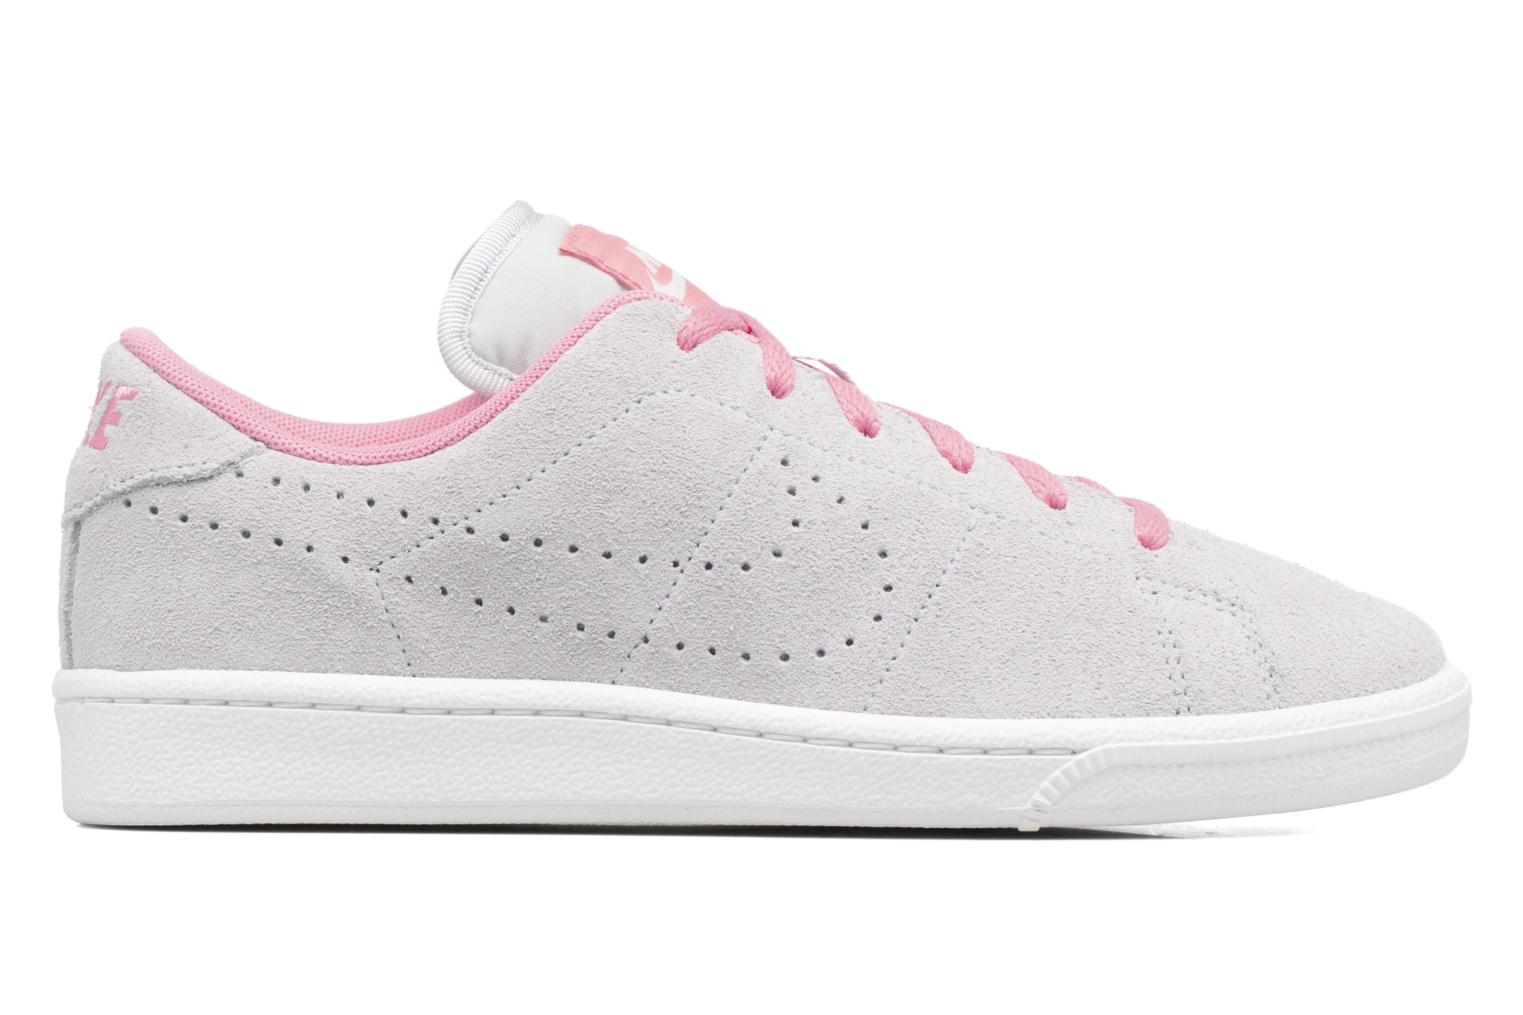 Nike Tennis Classic Prm (Gs) Pure Platinum/Pure Platinum-Bright Melon